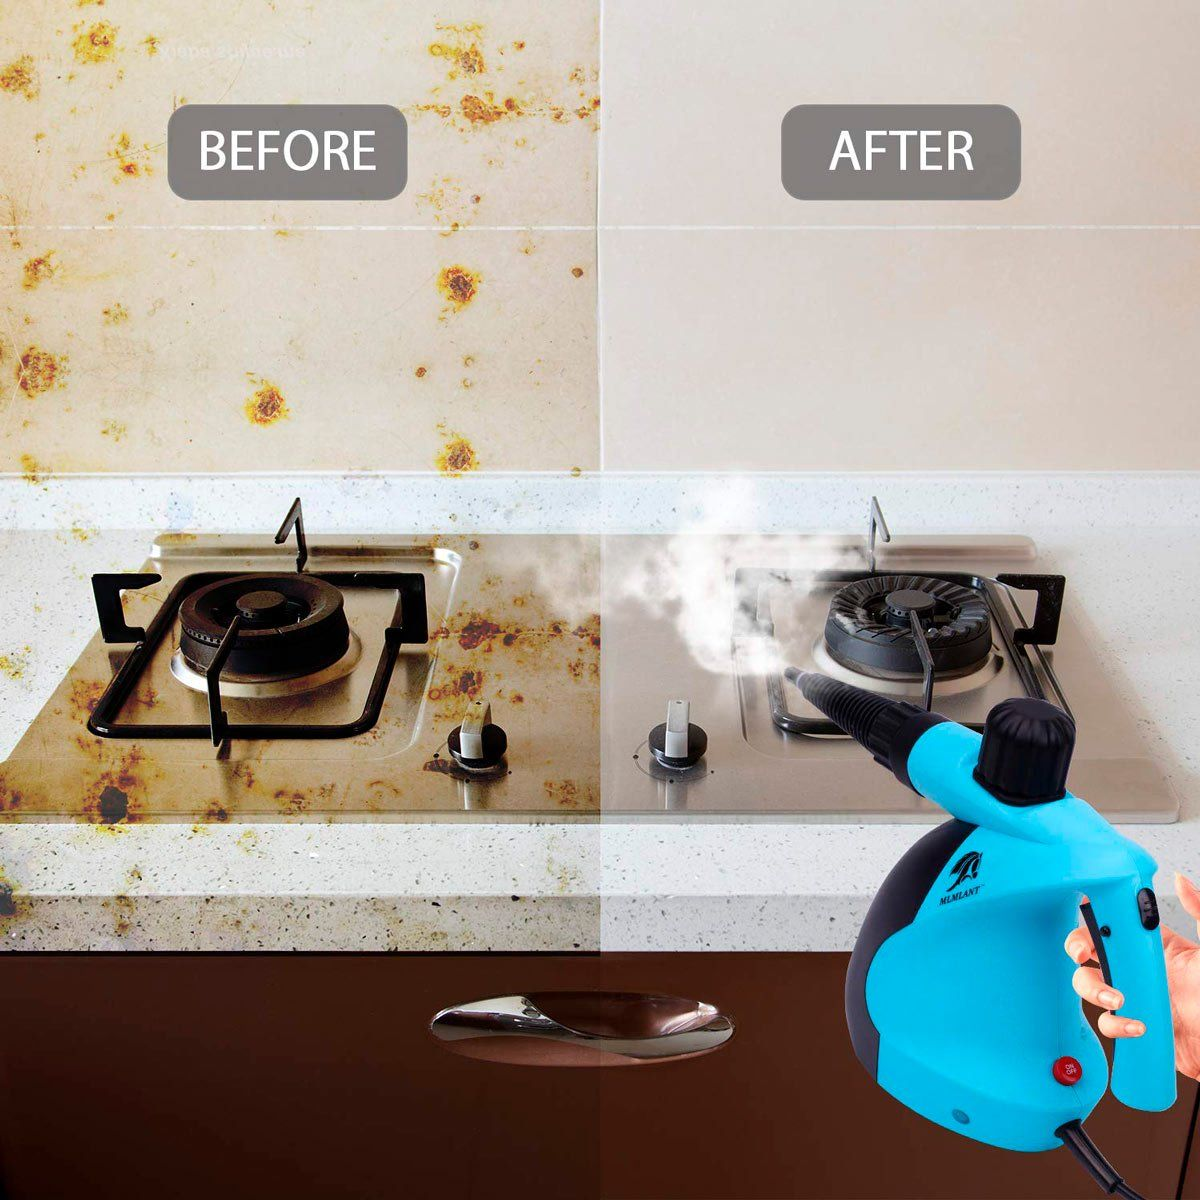 11 Brilliant Ways To Use A Steam Cleaner At Home In 2020 Steam Cleaners Cleaning House Cleaning Tips